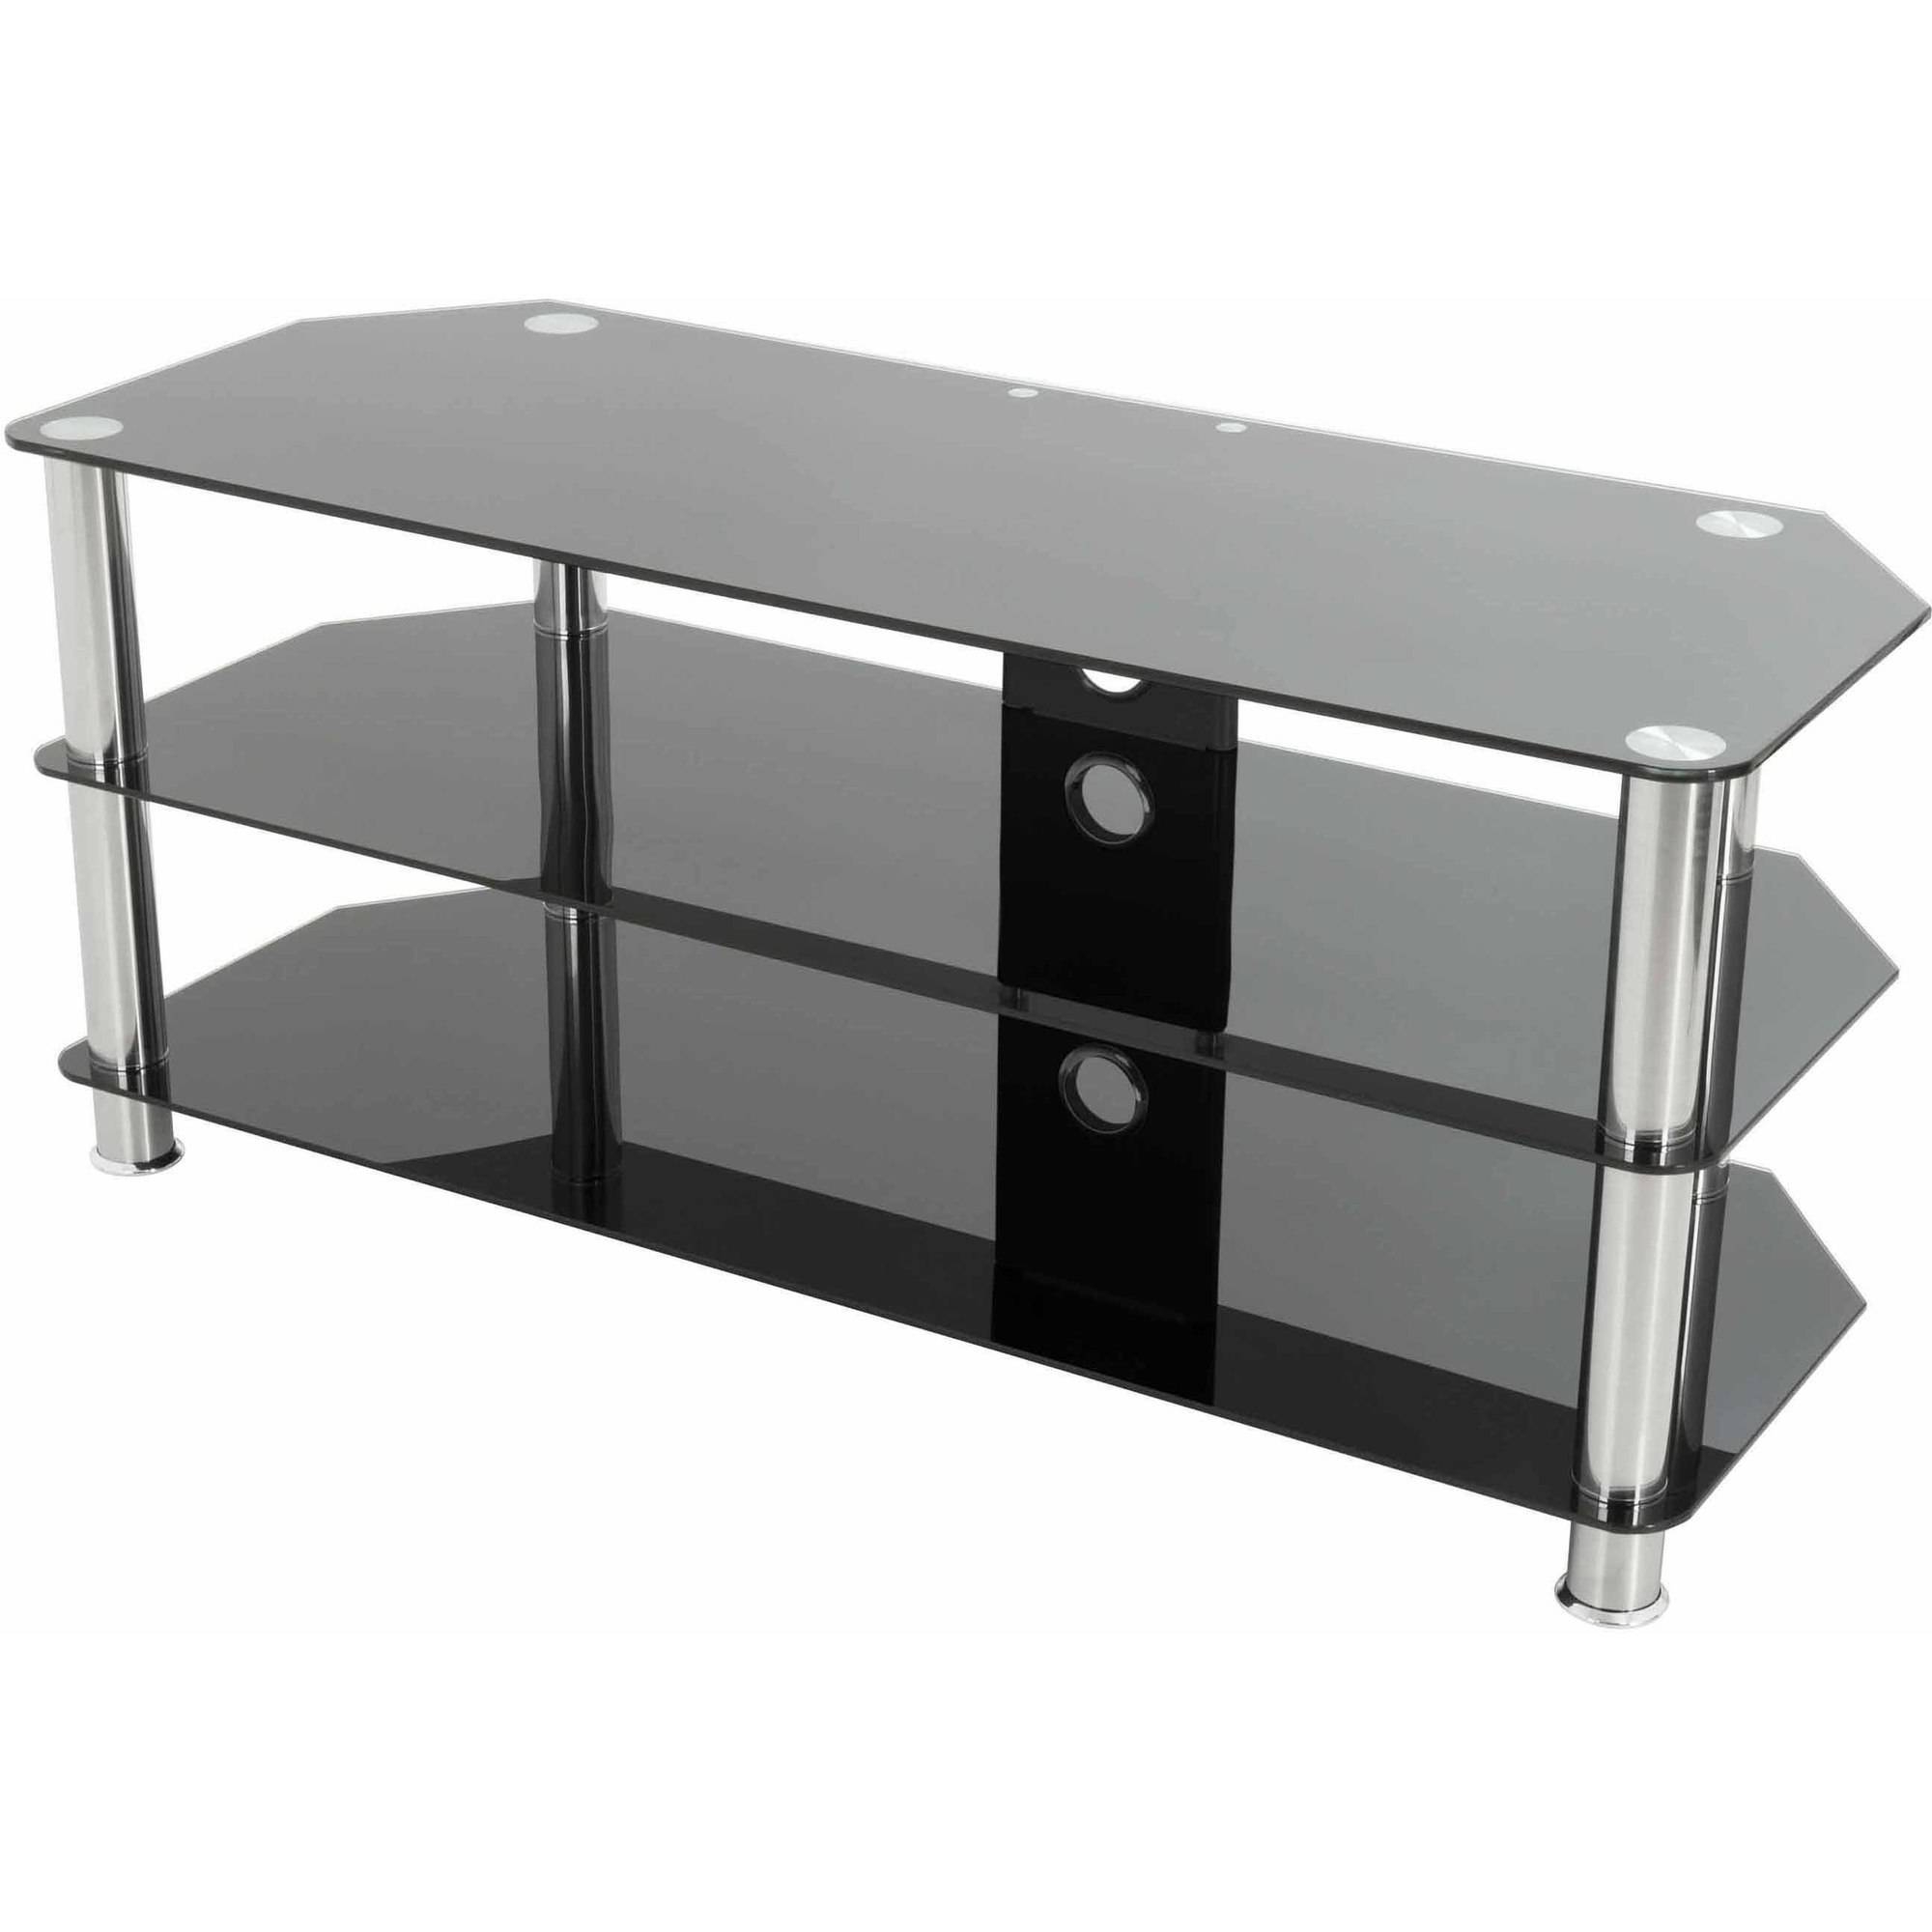 Glass Tv Stands Inside Well Known Avf Classic Corner Glass Tv Stand With Cable Management For Up To (View 19 of 20)